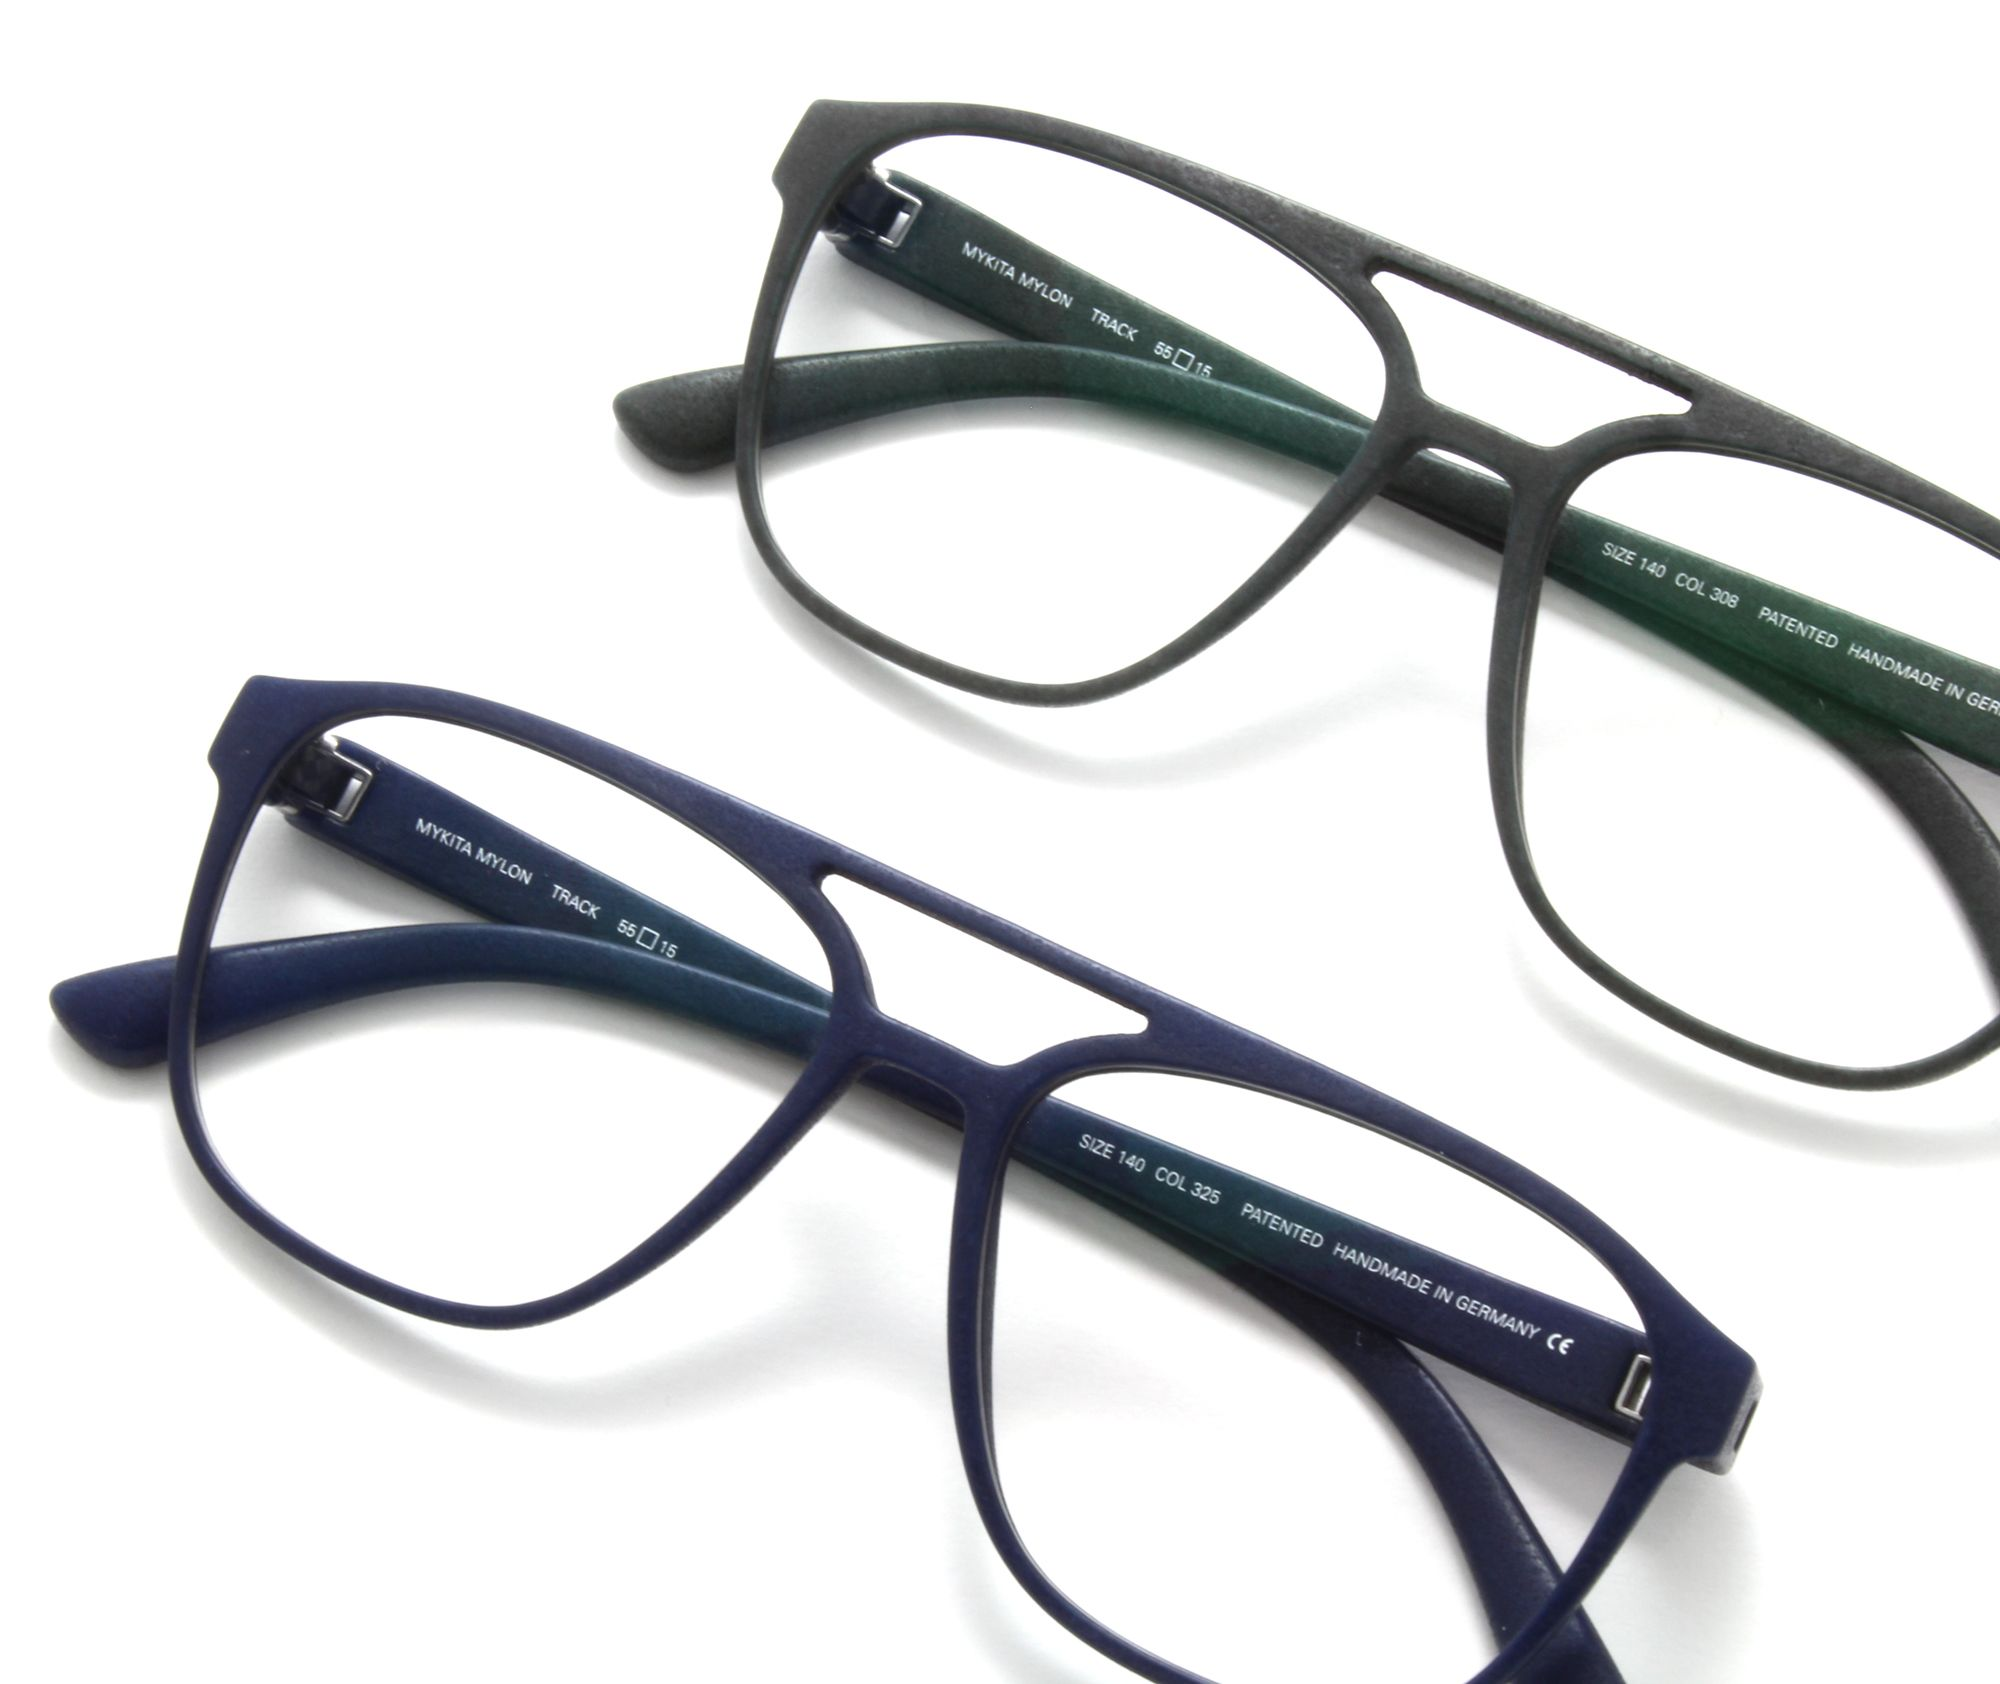 35d4b1dcb70 The MYKITA MYLON    TRACK offers a classic aviator shape for men crafted  out of light and durable mylon. Available in 3 colors.